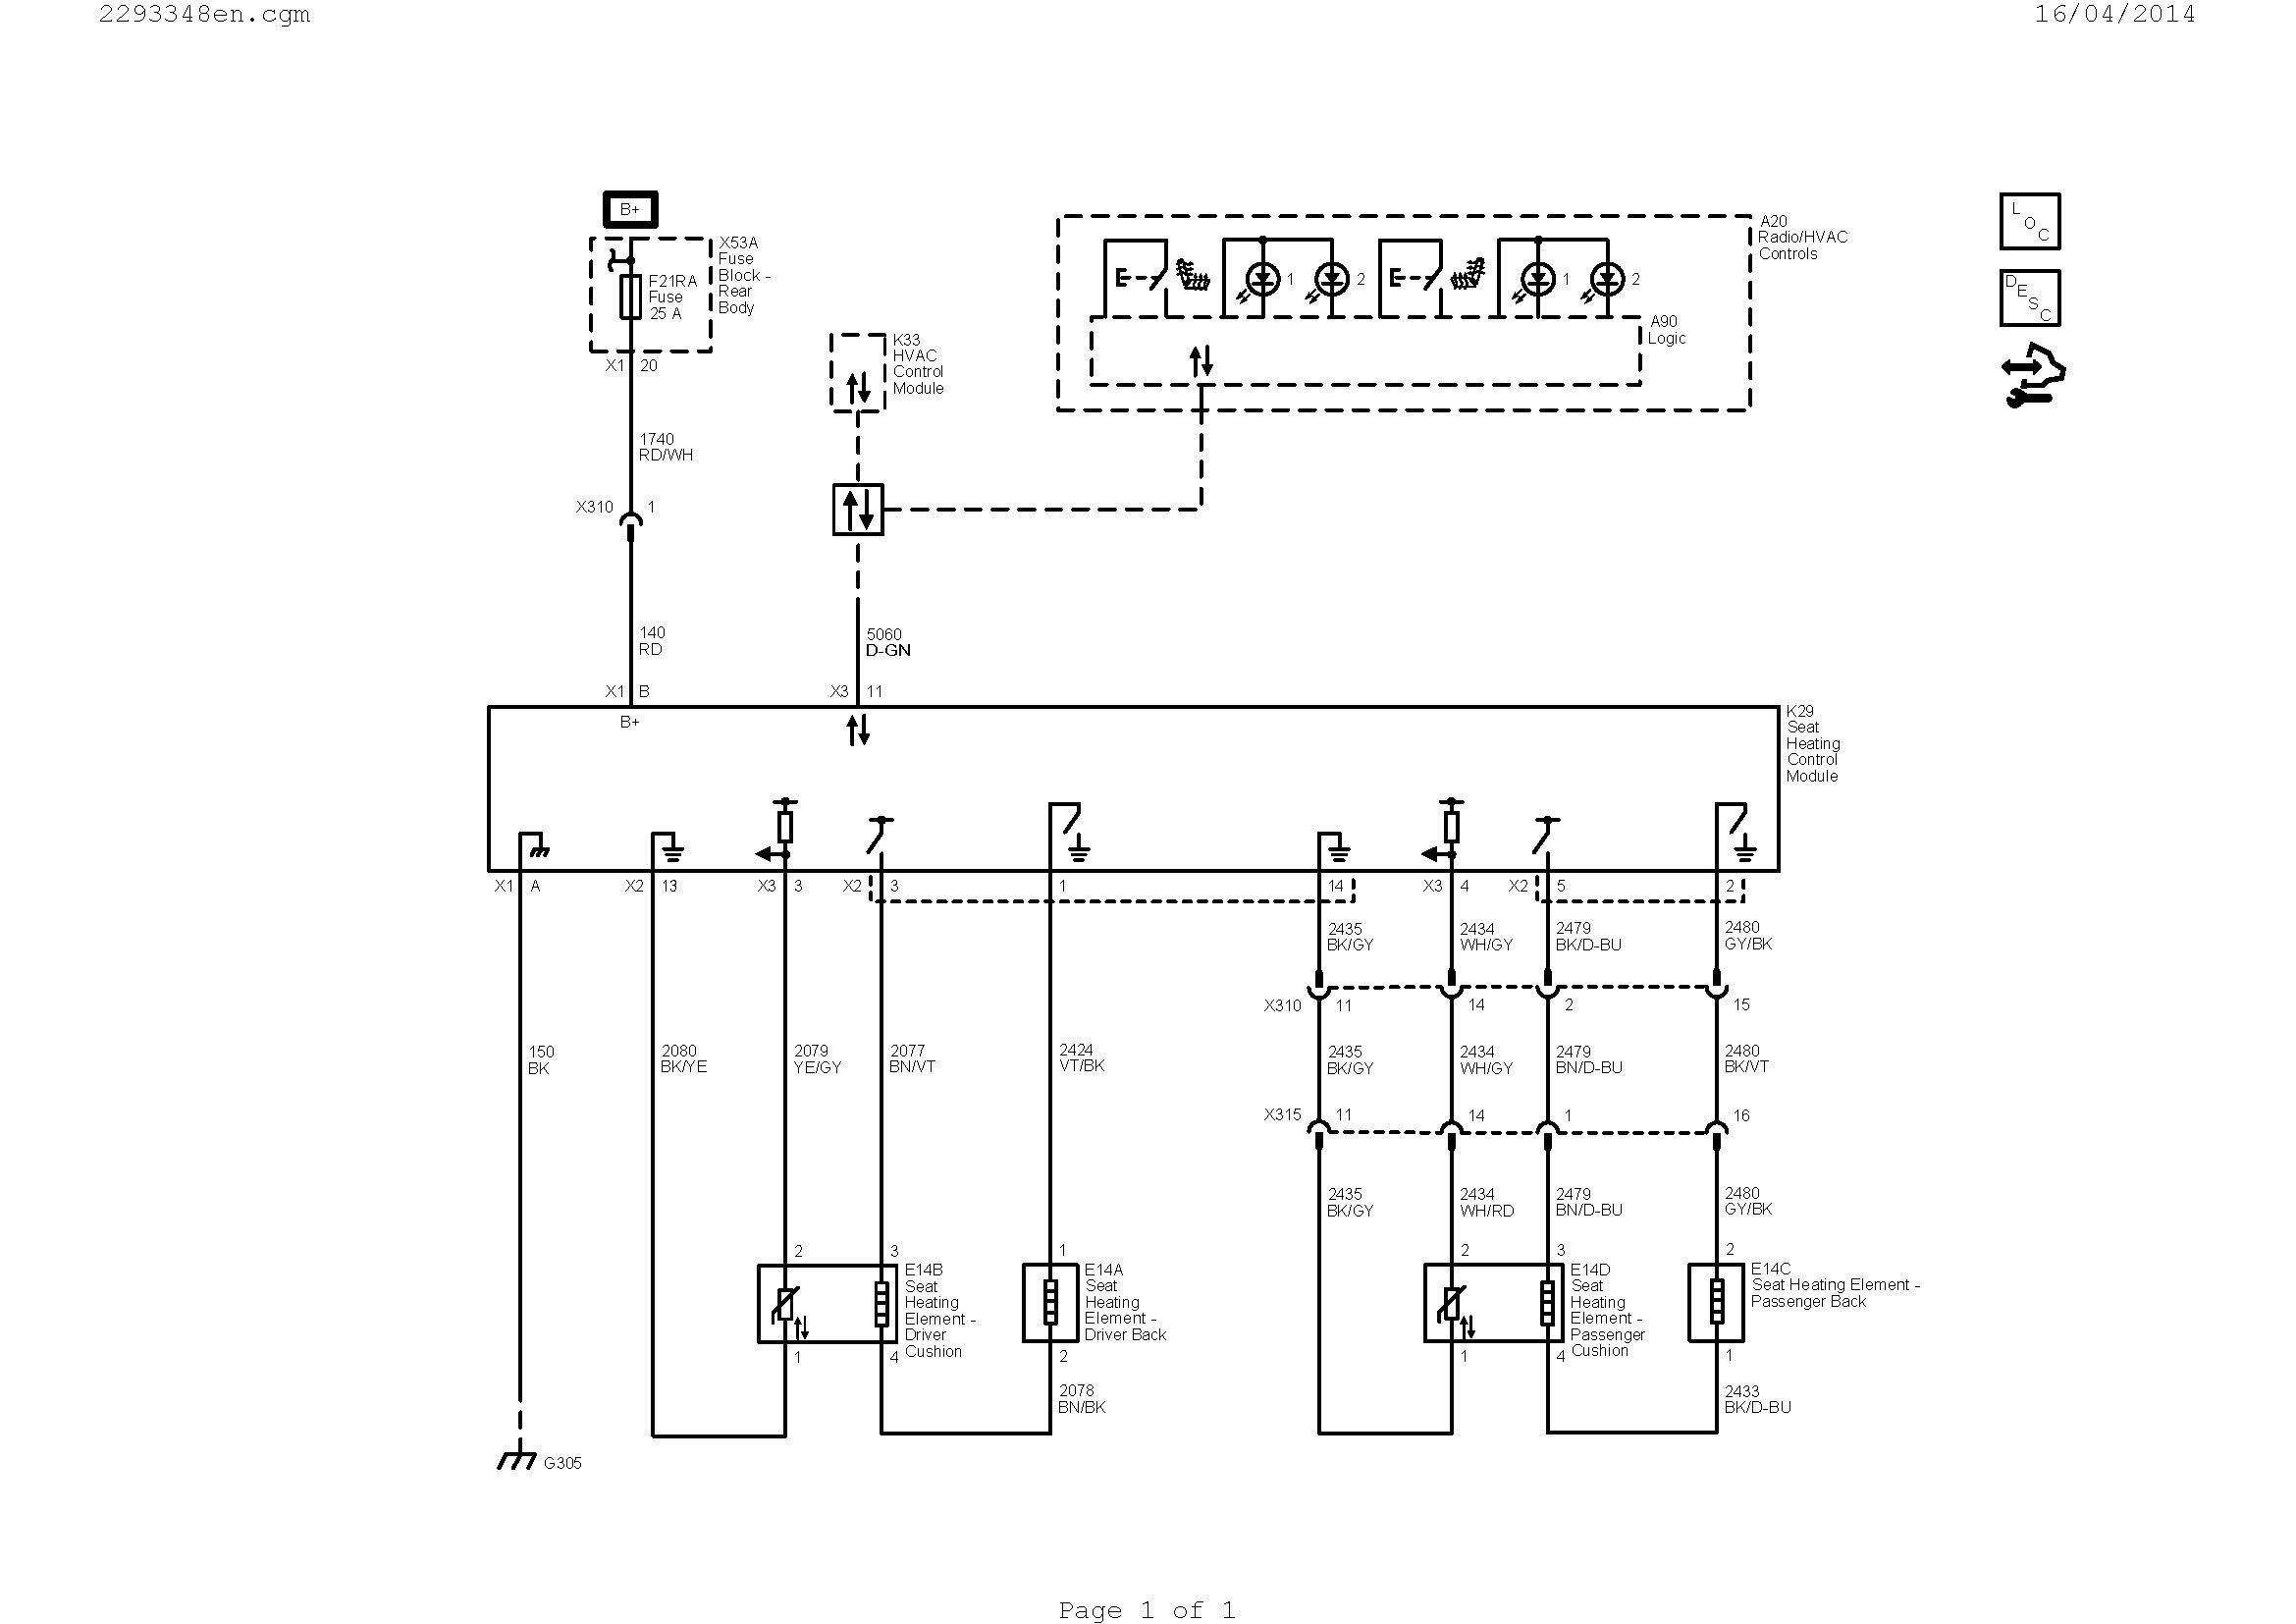 air conditioner thermostat wiring diagram Collection-ac thermostat wiring diagram Collection Wiring A Ac Thermostat Diagram New Wiring Diagram Ac Valid 11-g